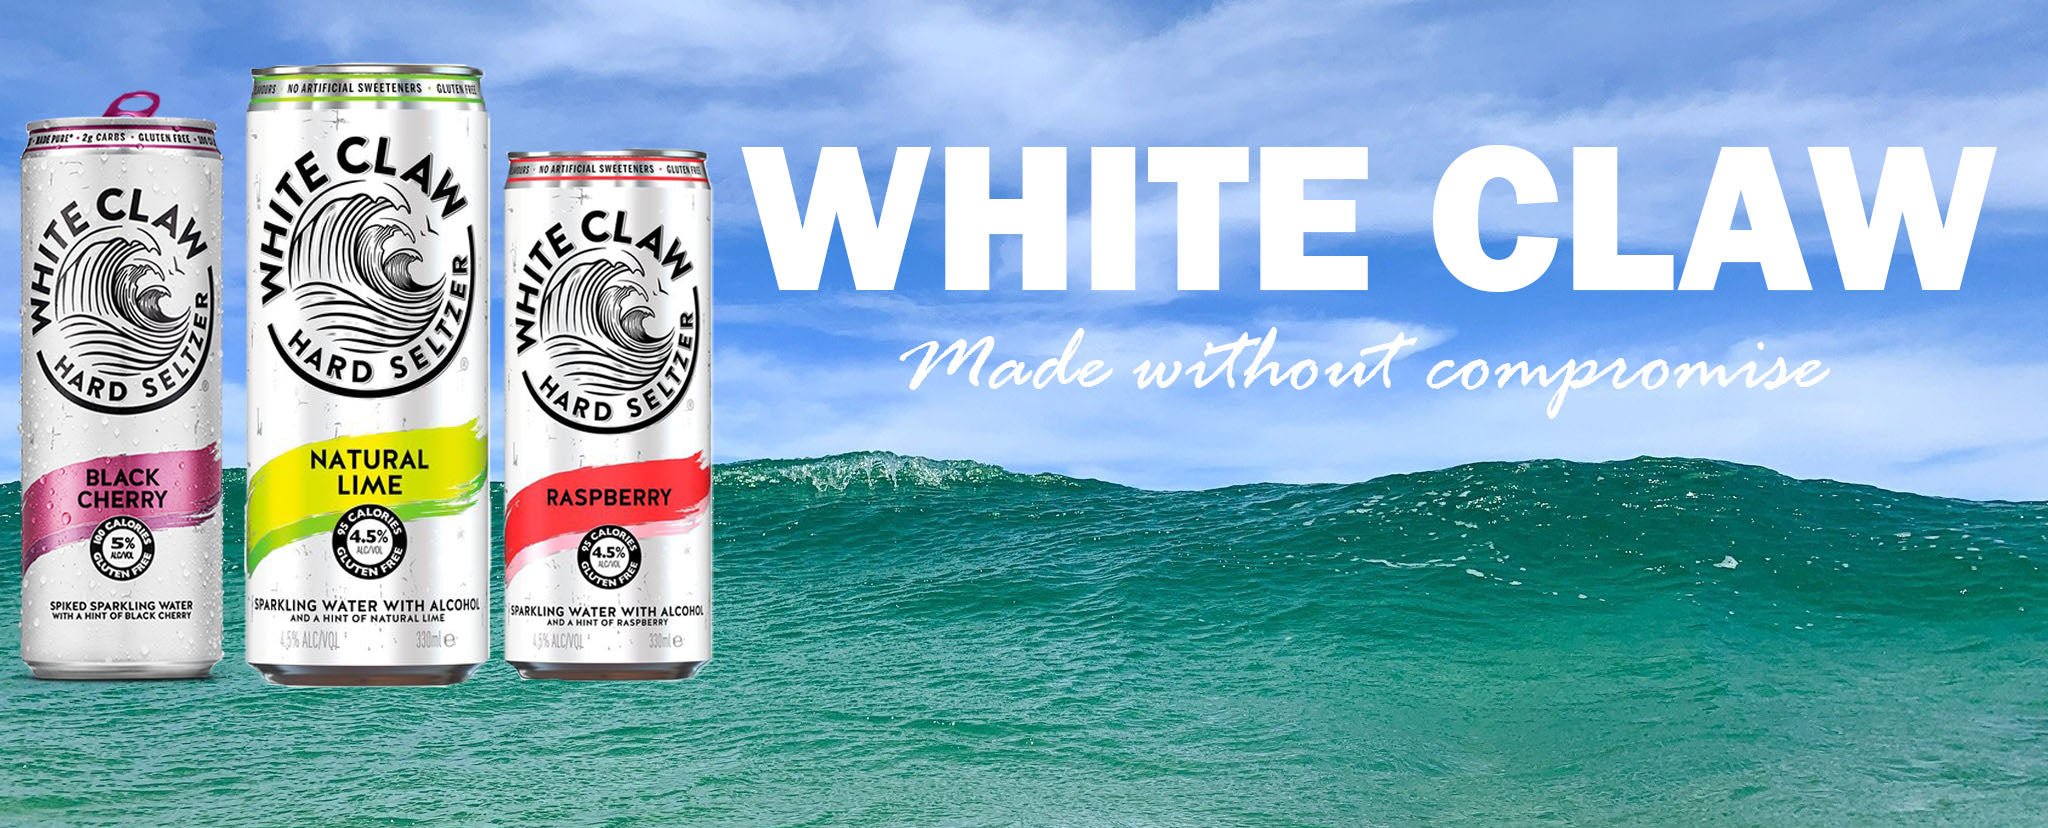 White Claw Hard Seltzer - made without compromise!